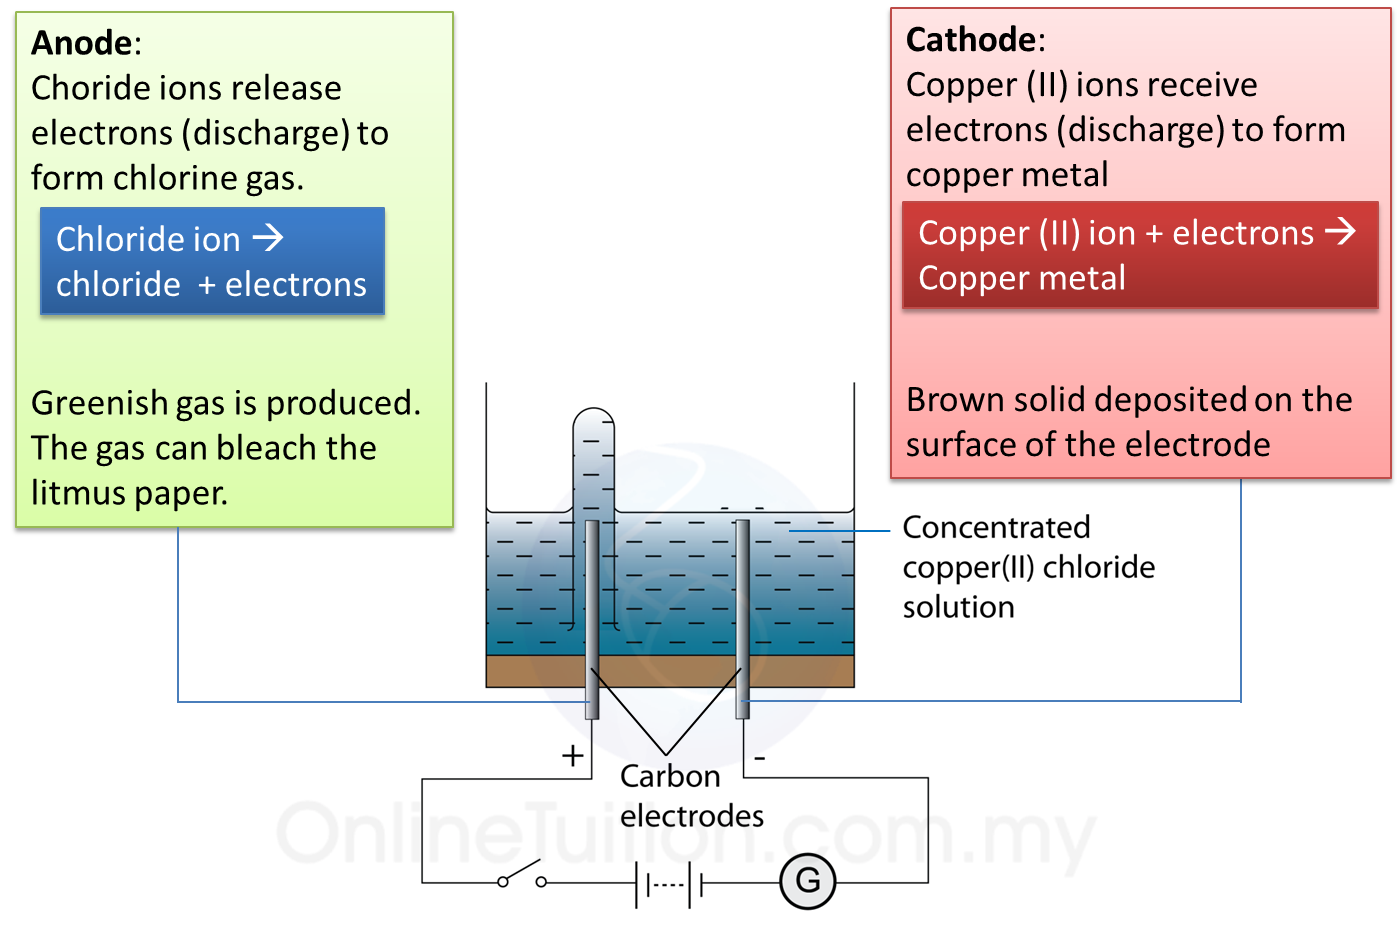 5 5 2 Electrolysis of Copper (II) Chloride Solution - SPM